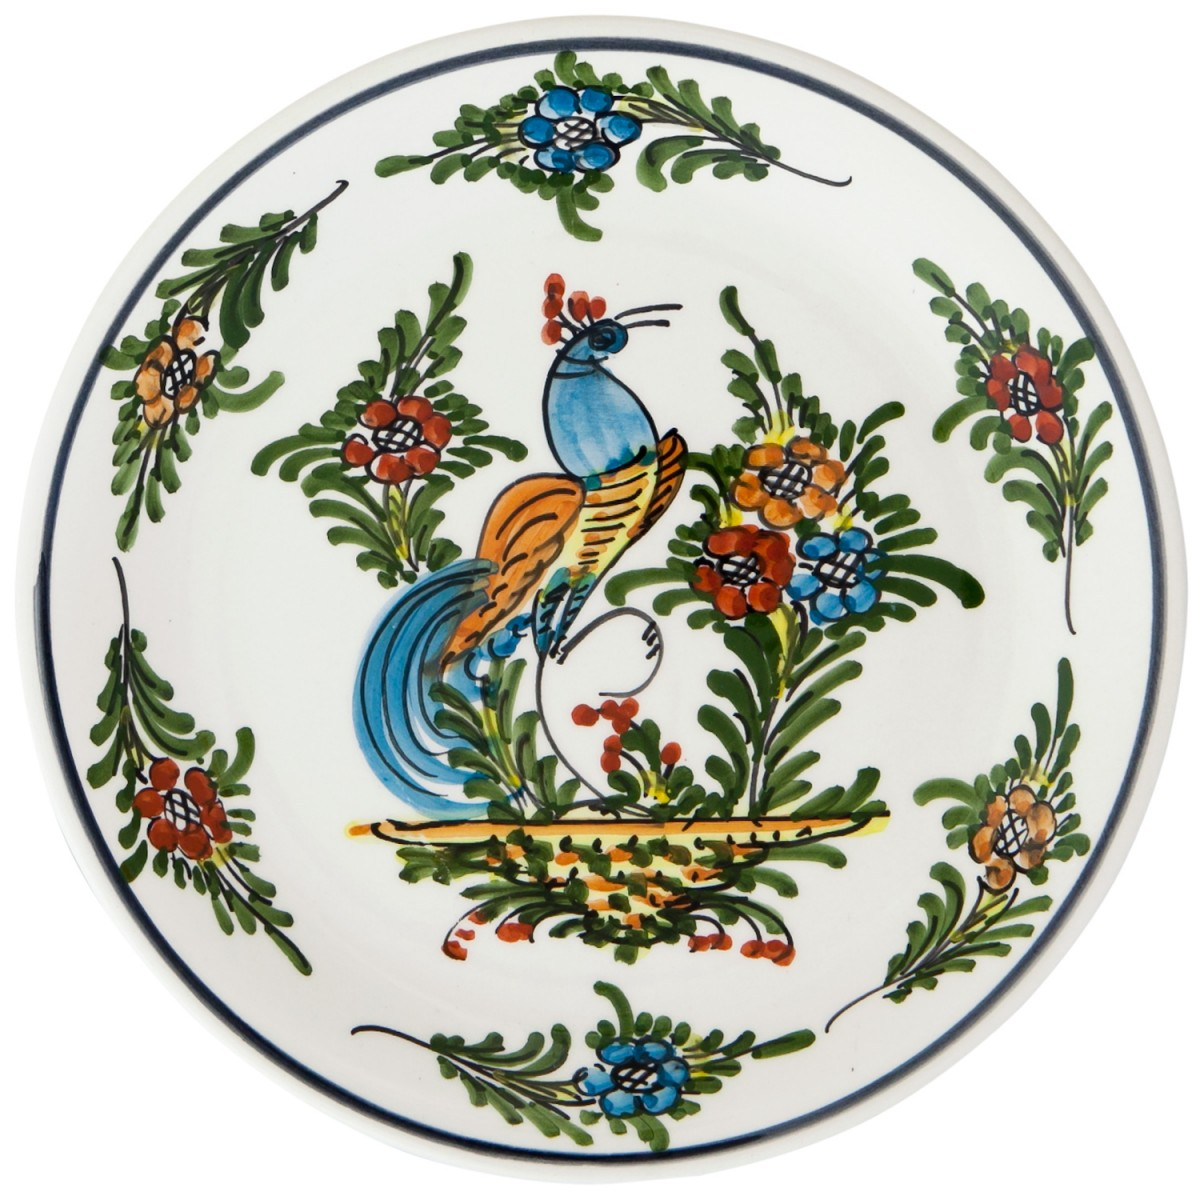 Hand_Painted_Ceramic_Fruit_Decorative_Plate-Peacock-II-1